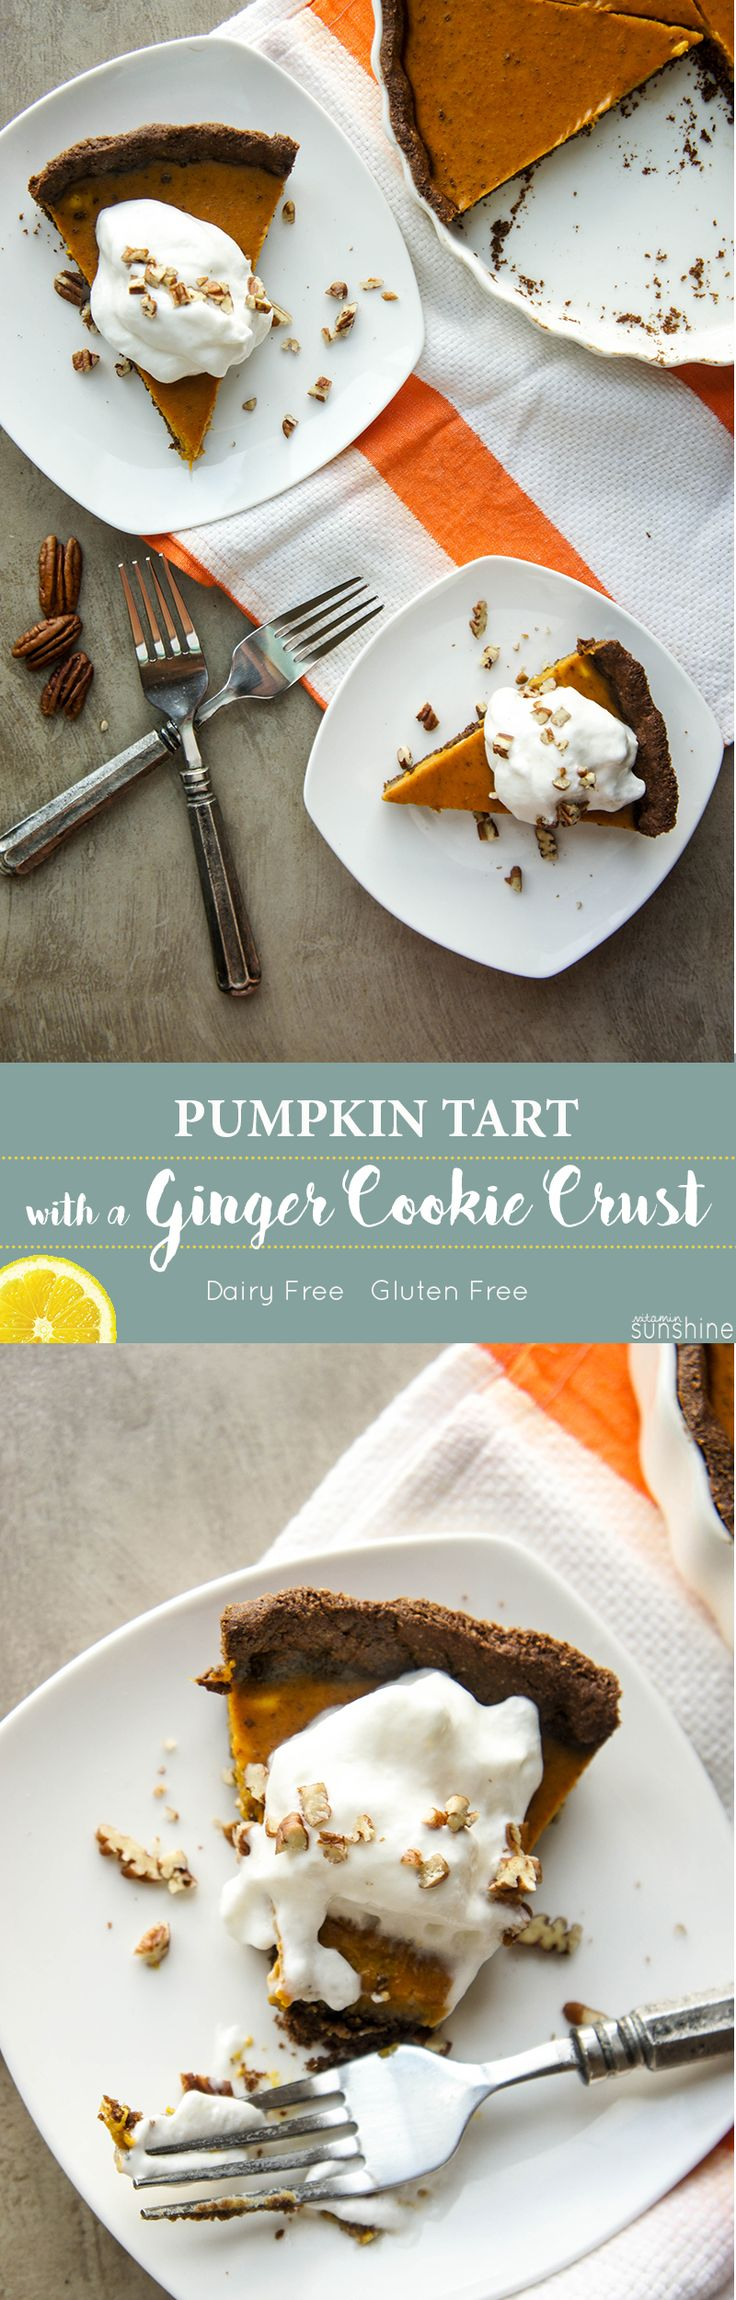 Pumpkin Tart with a Ginger Cookie Crust / This beauty is dairy free and gluten free, so everyone can enjoy this holiday season!